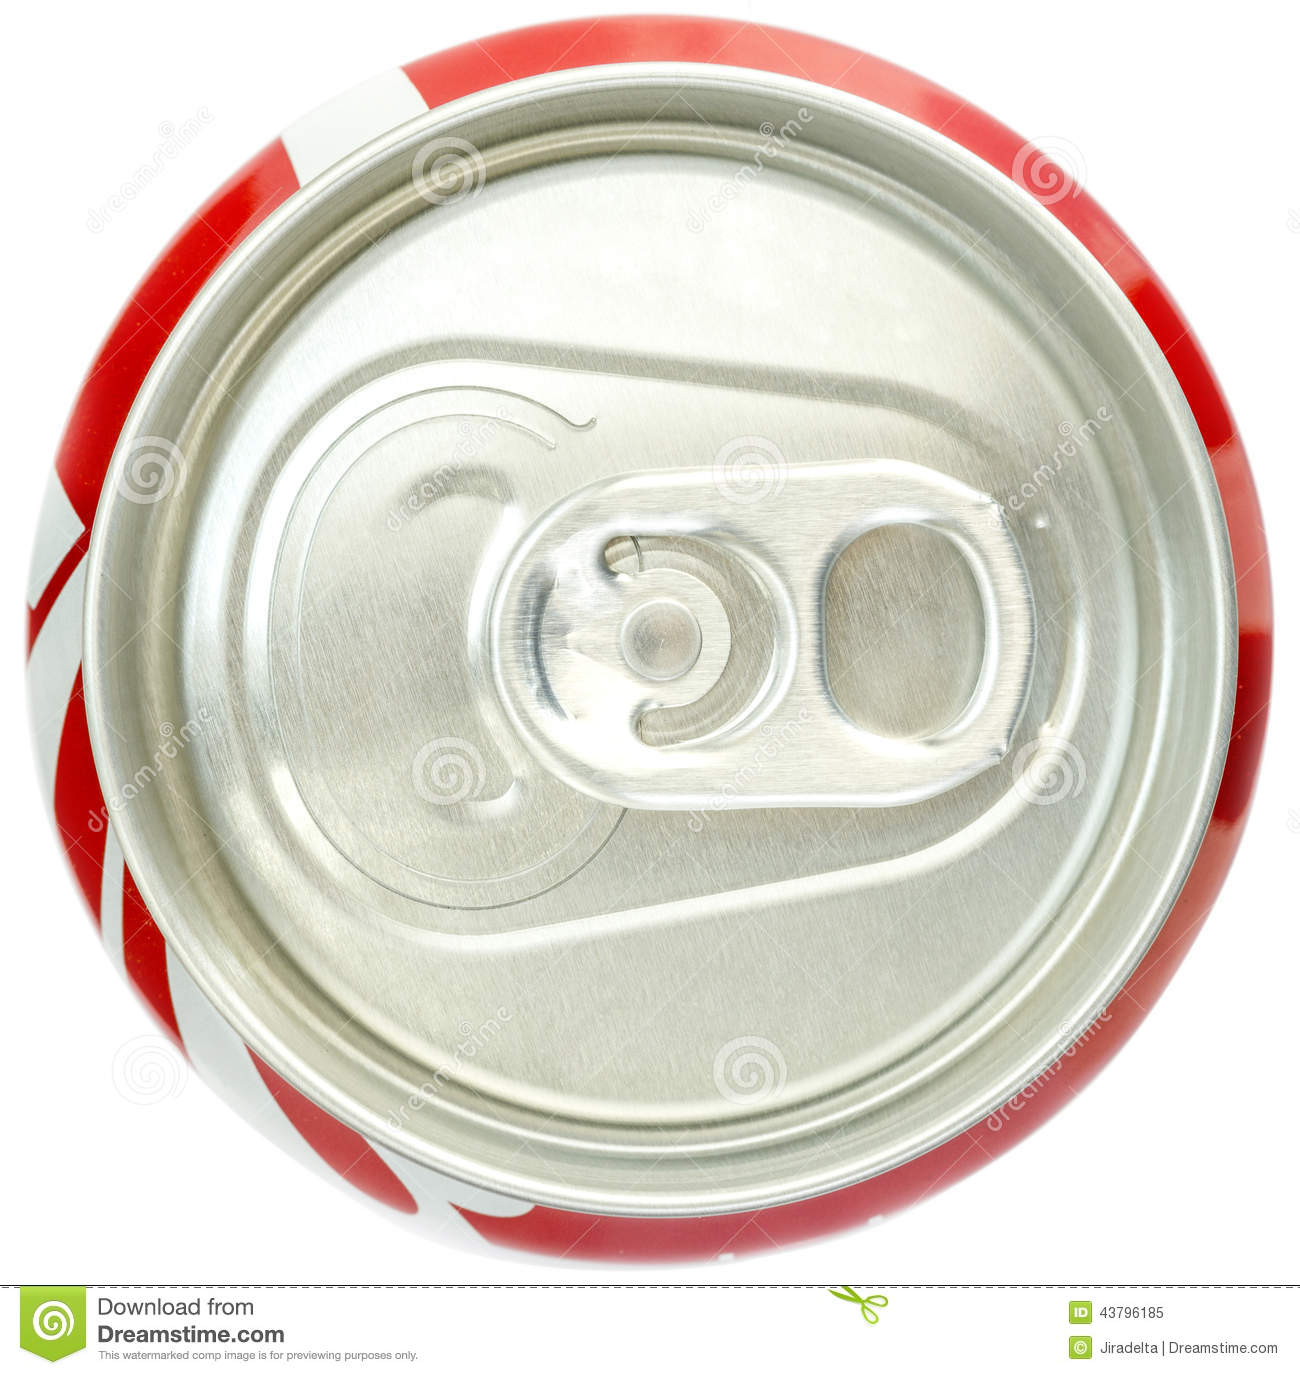 Soda Can Top View Stock Image. Image Of Close, Soda, Juice